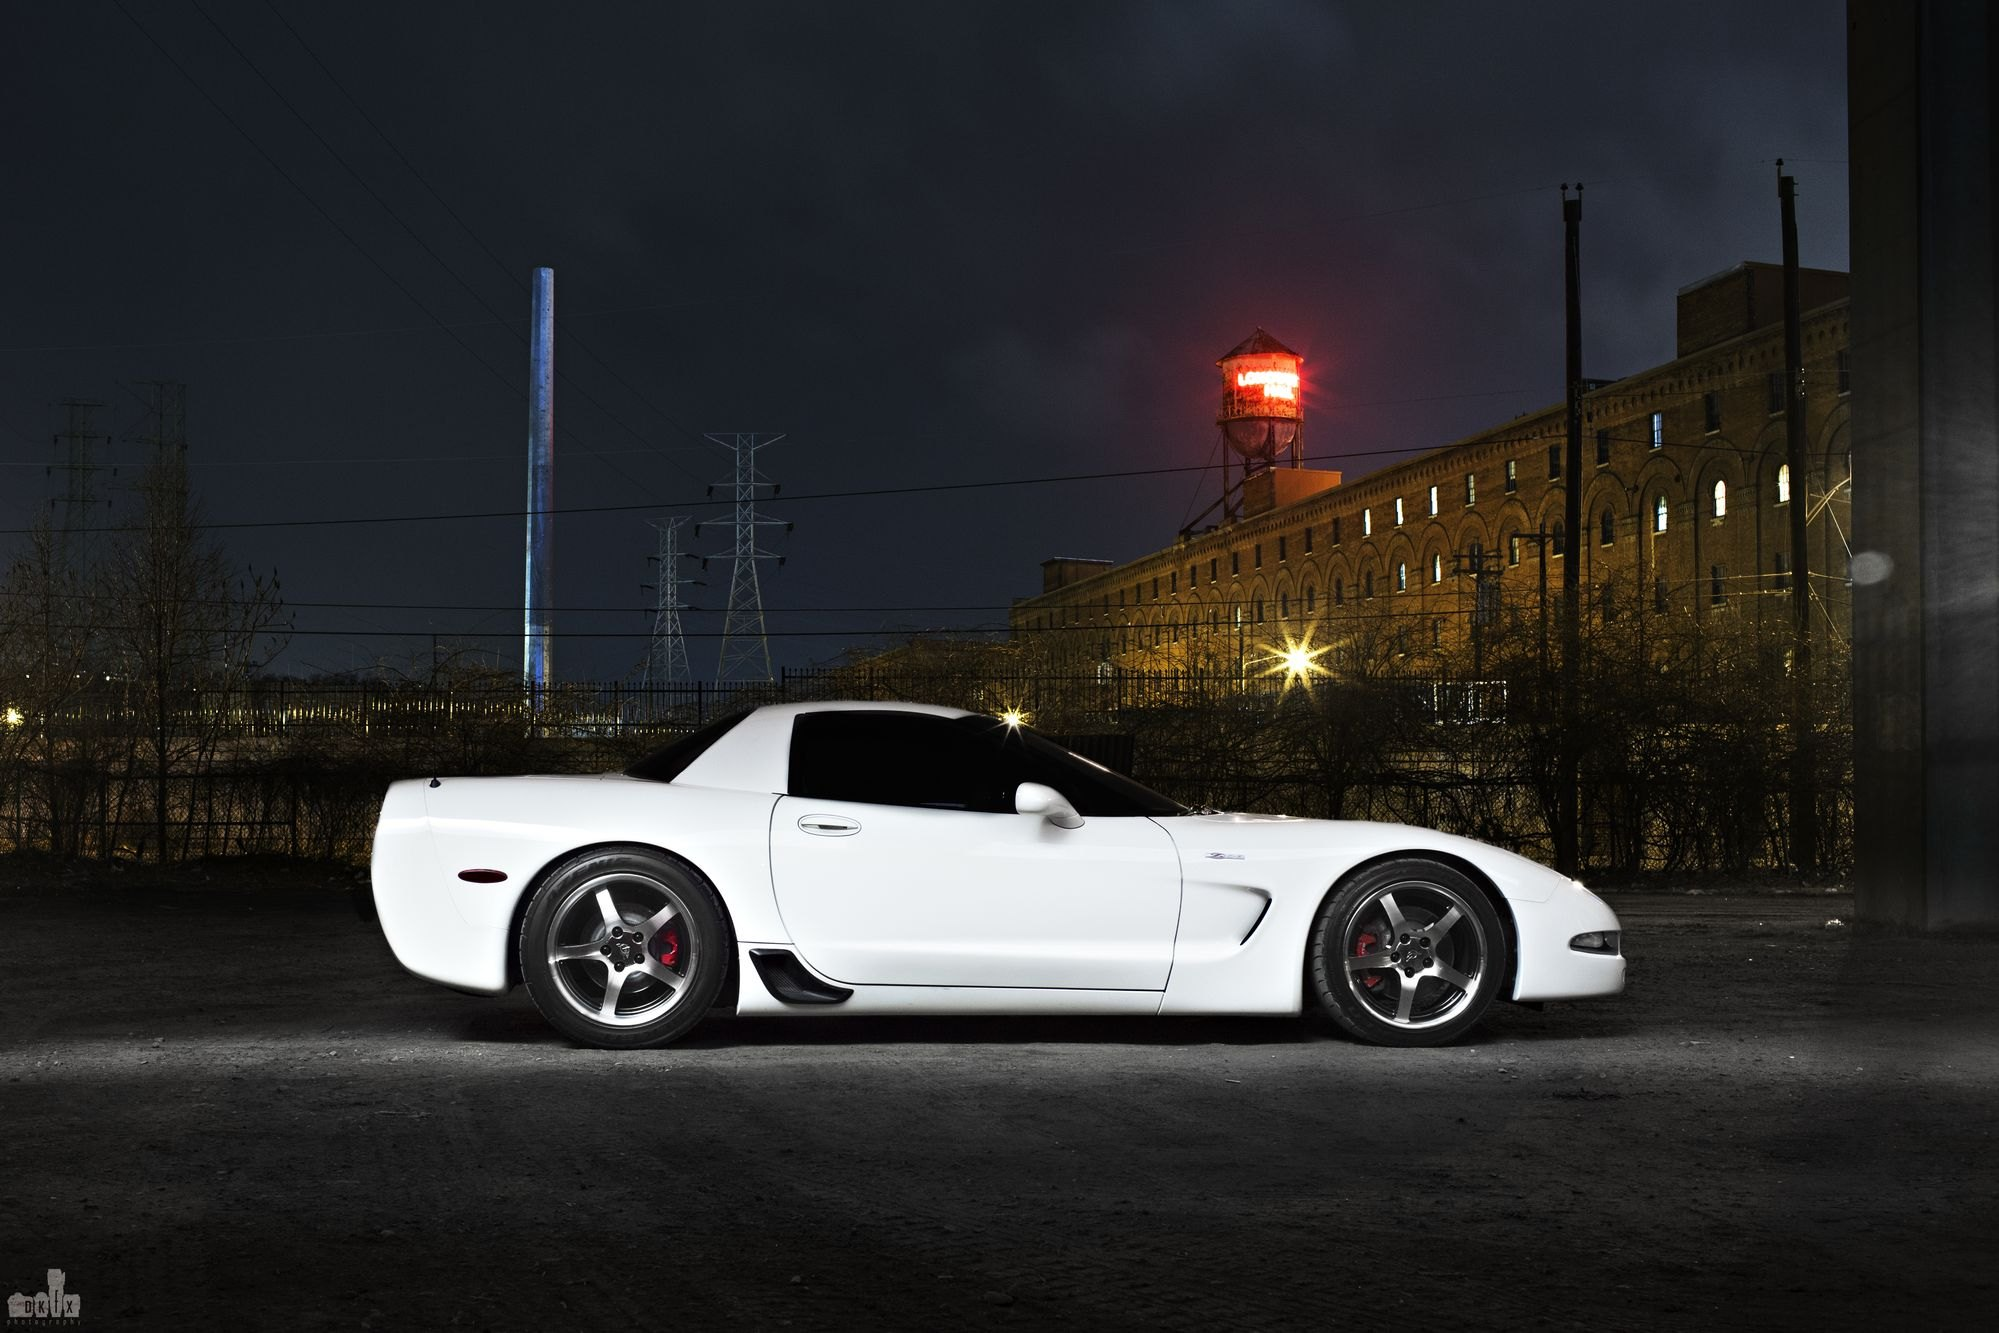 Aftermarket Side Scoops on White Chevy Corvette - Photo by dan kinzie